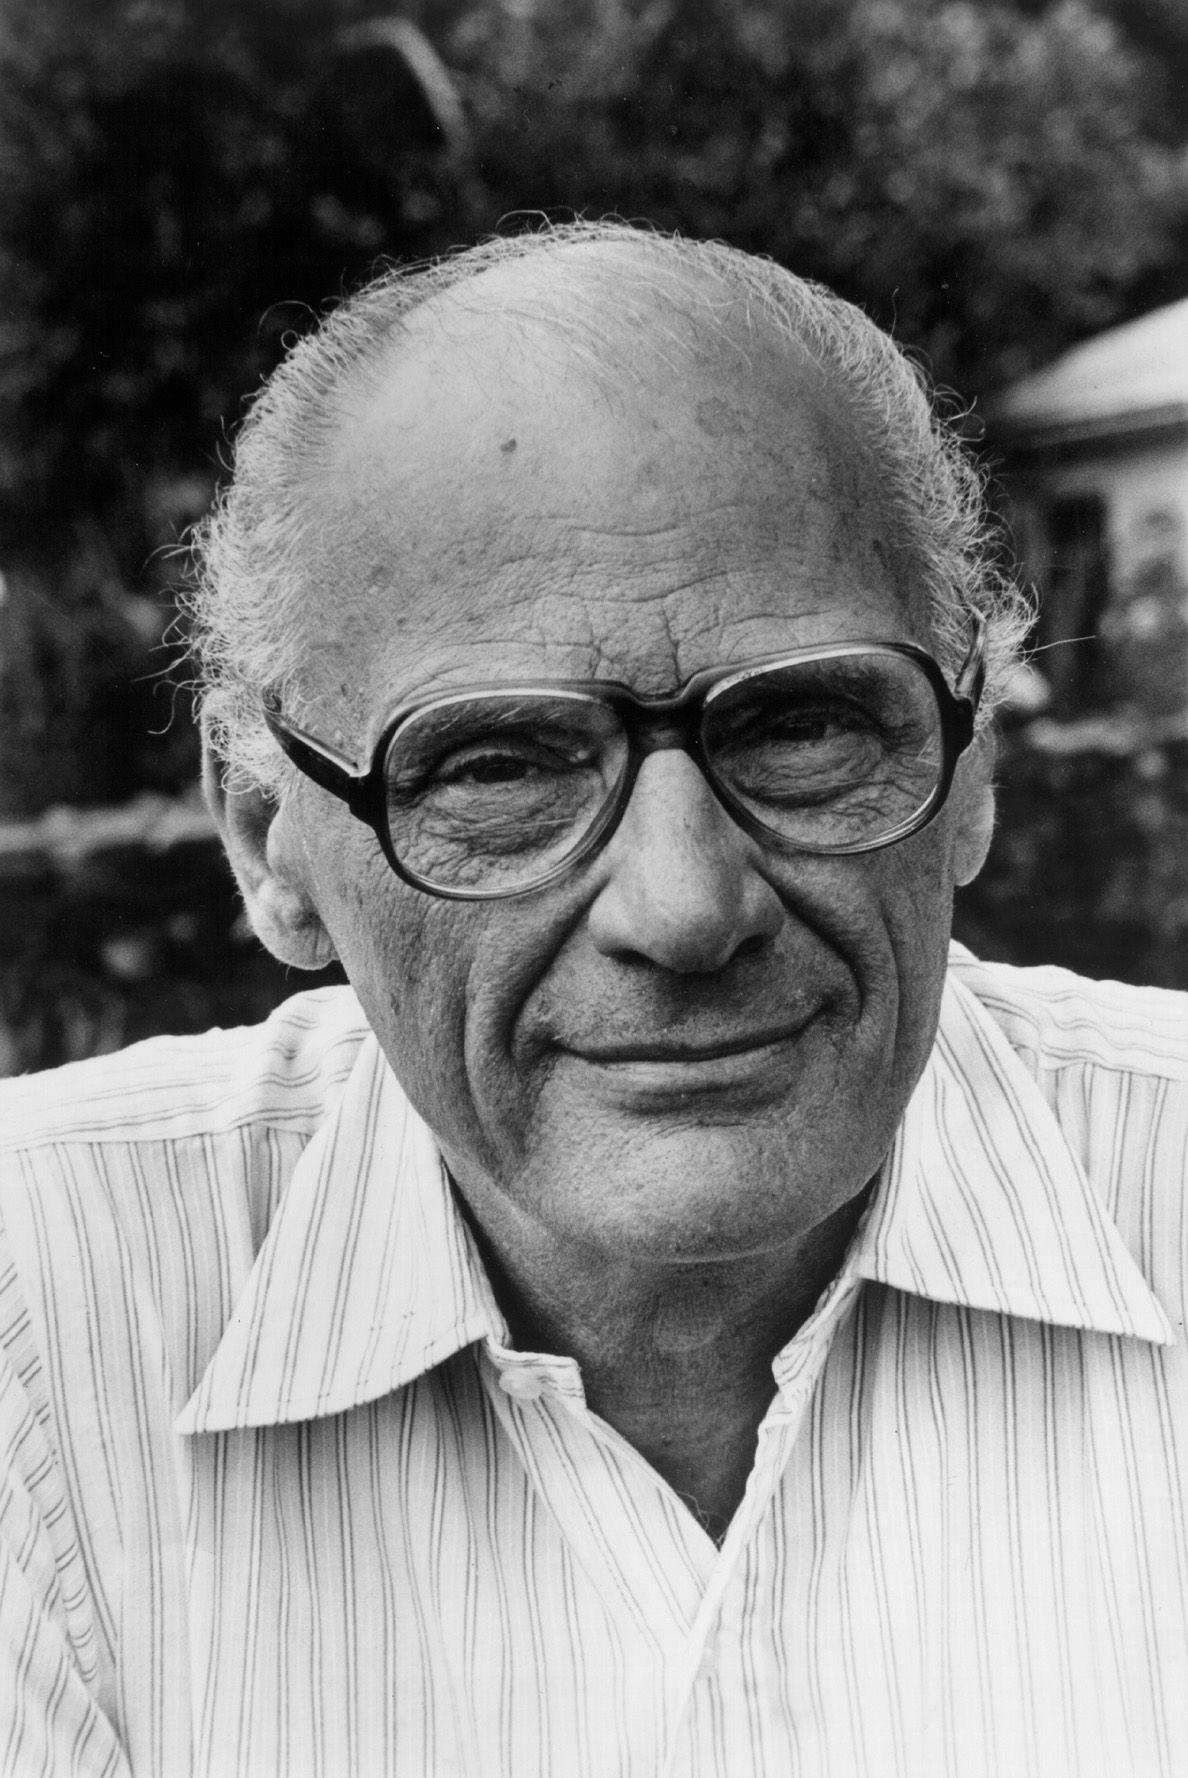 arthur miller essays essay arthur miller essay the theater essays  17 best images about past inge festival honorees 17 best images about past inge festival honorees essays on all my sons arthur miller